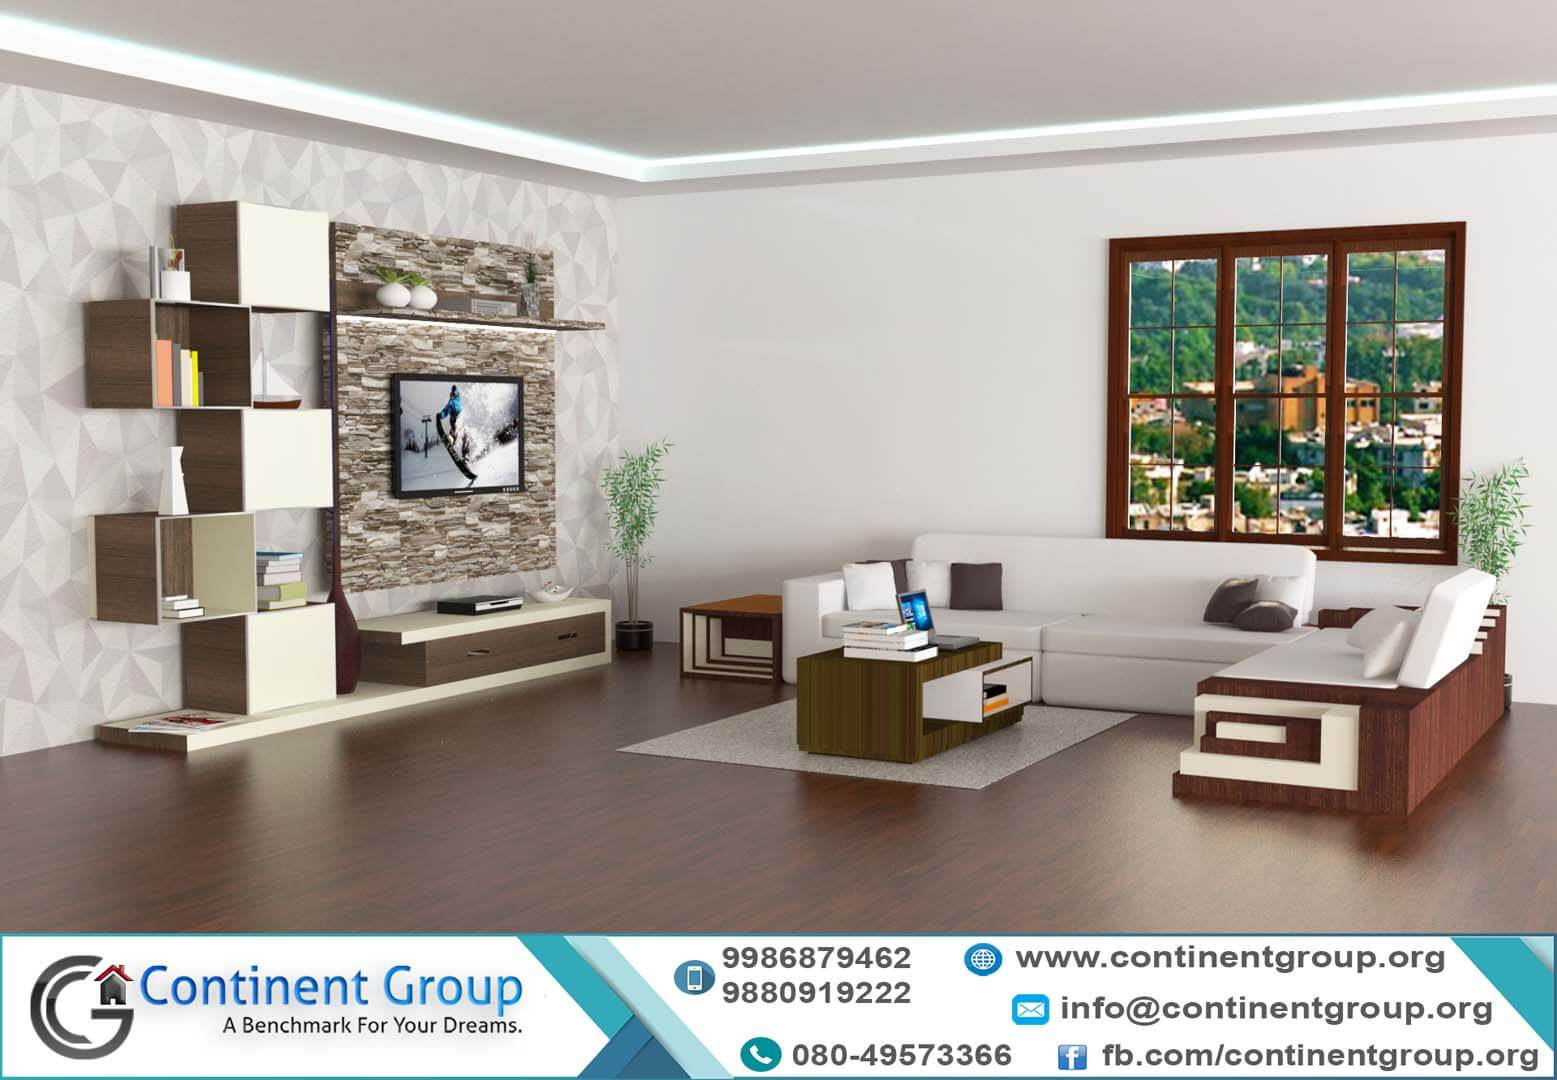 Budget interior designers Bangalore - Continent Group